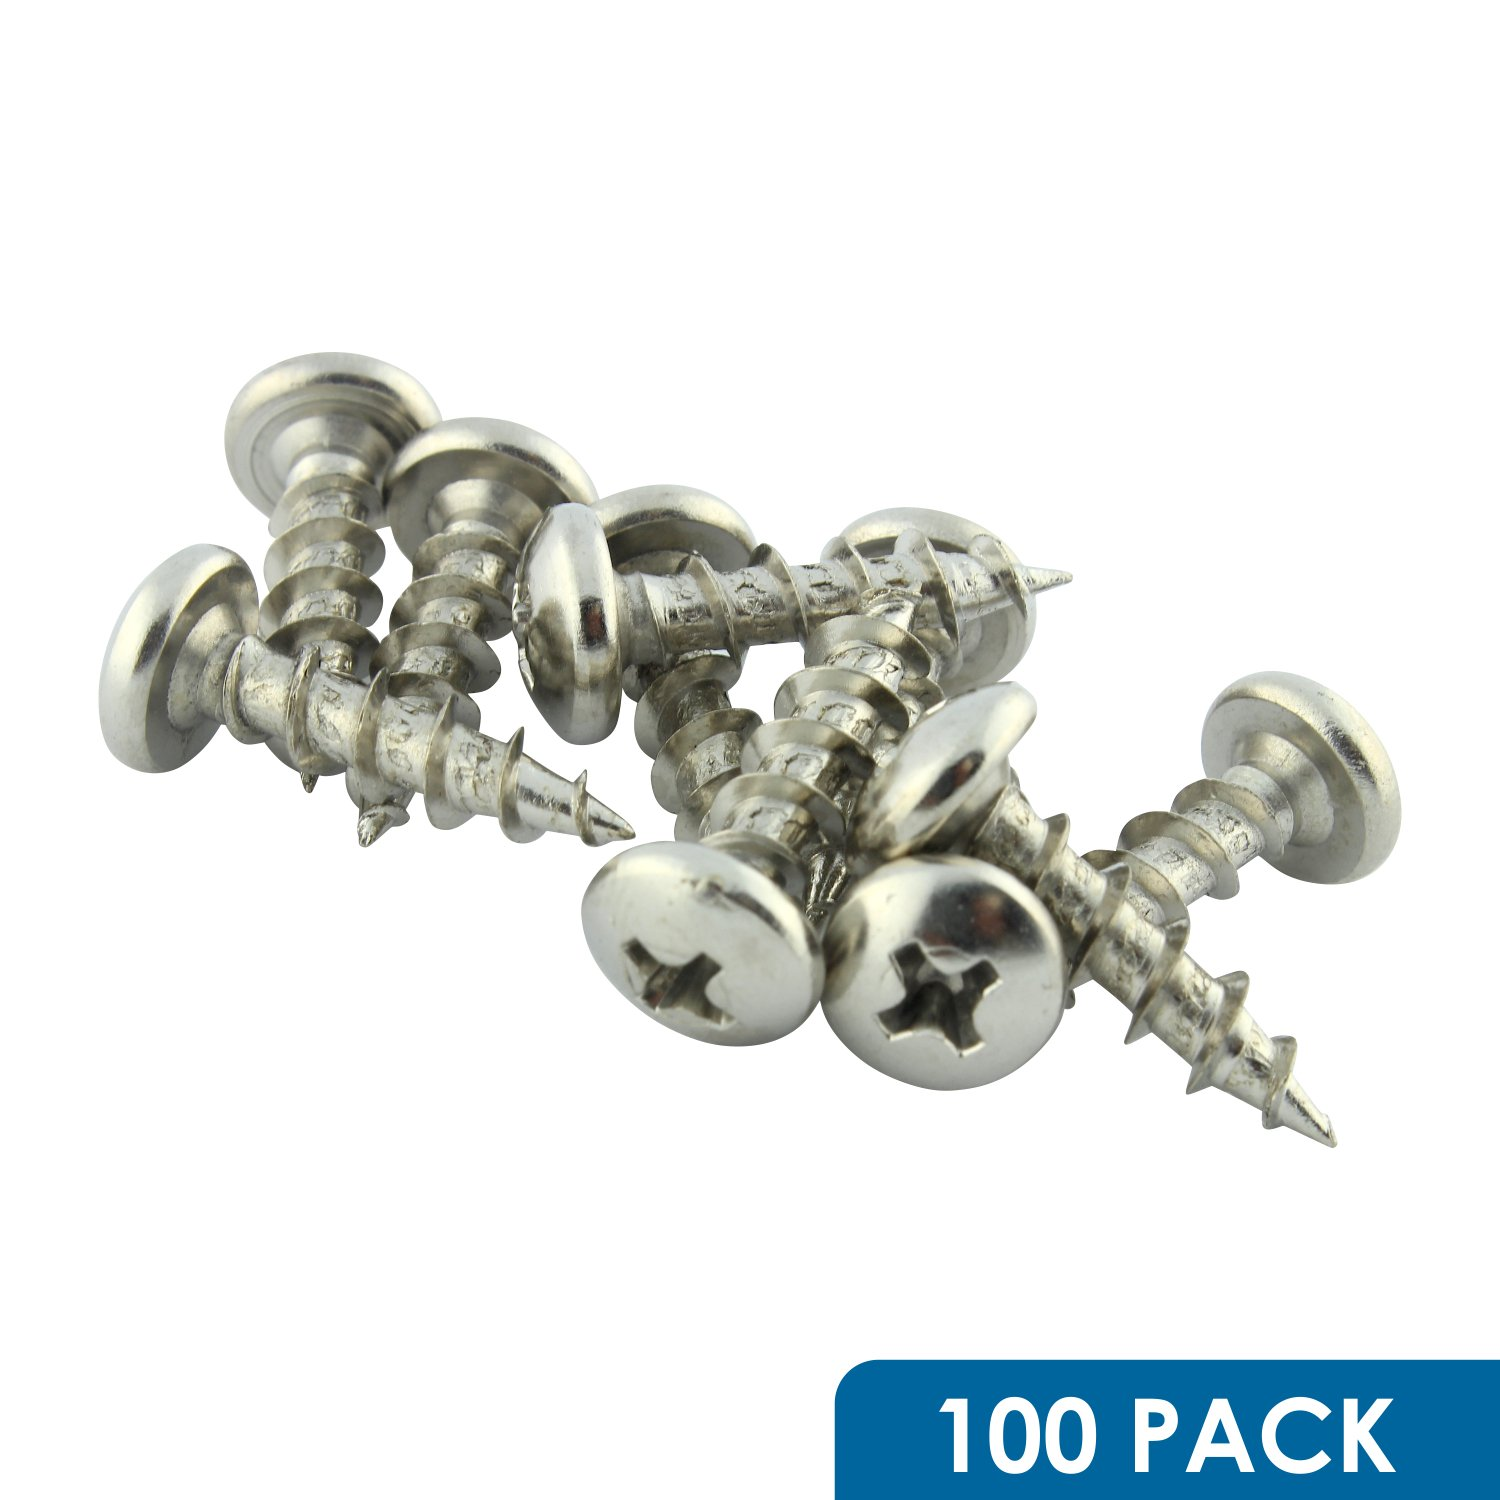 "#10 x 3/4"" Coarse Deep Thread Phillips Pan Head Screws Nickel Plated, 100 Pack ROKS10X34PPCNP"